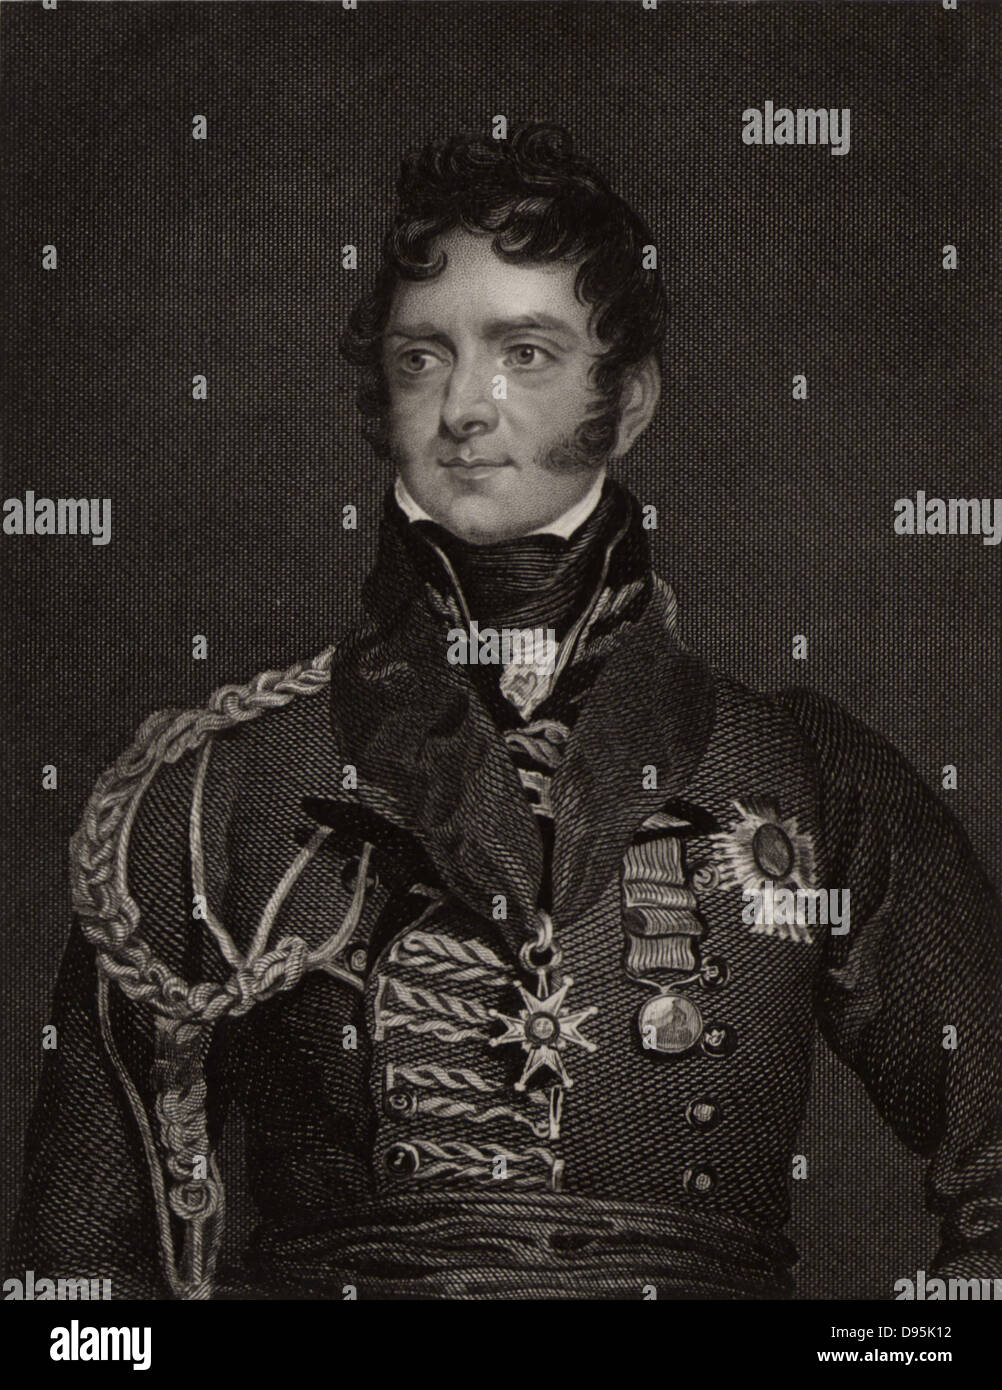 Henry Torrens (1779-1828) English soldier. Military secretary to General Wellesley (later Duke of Wellington) in - Stock Image